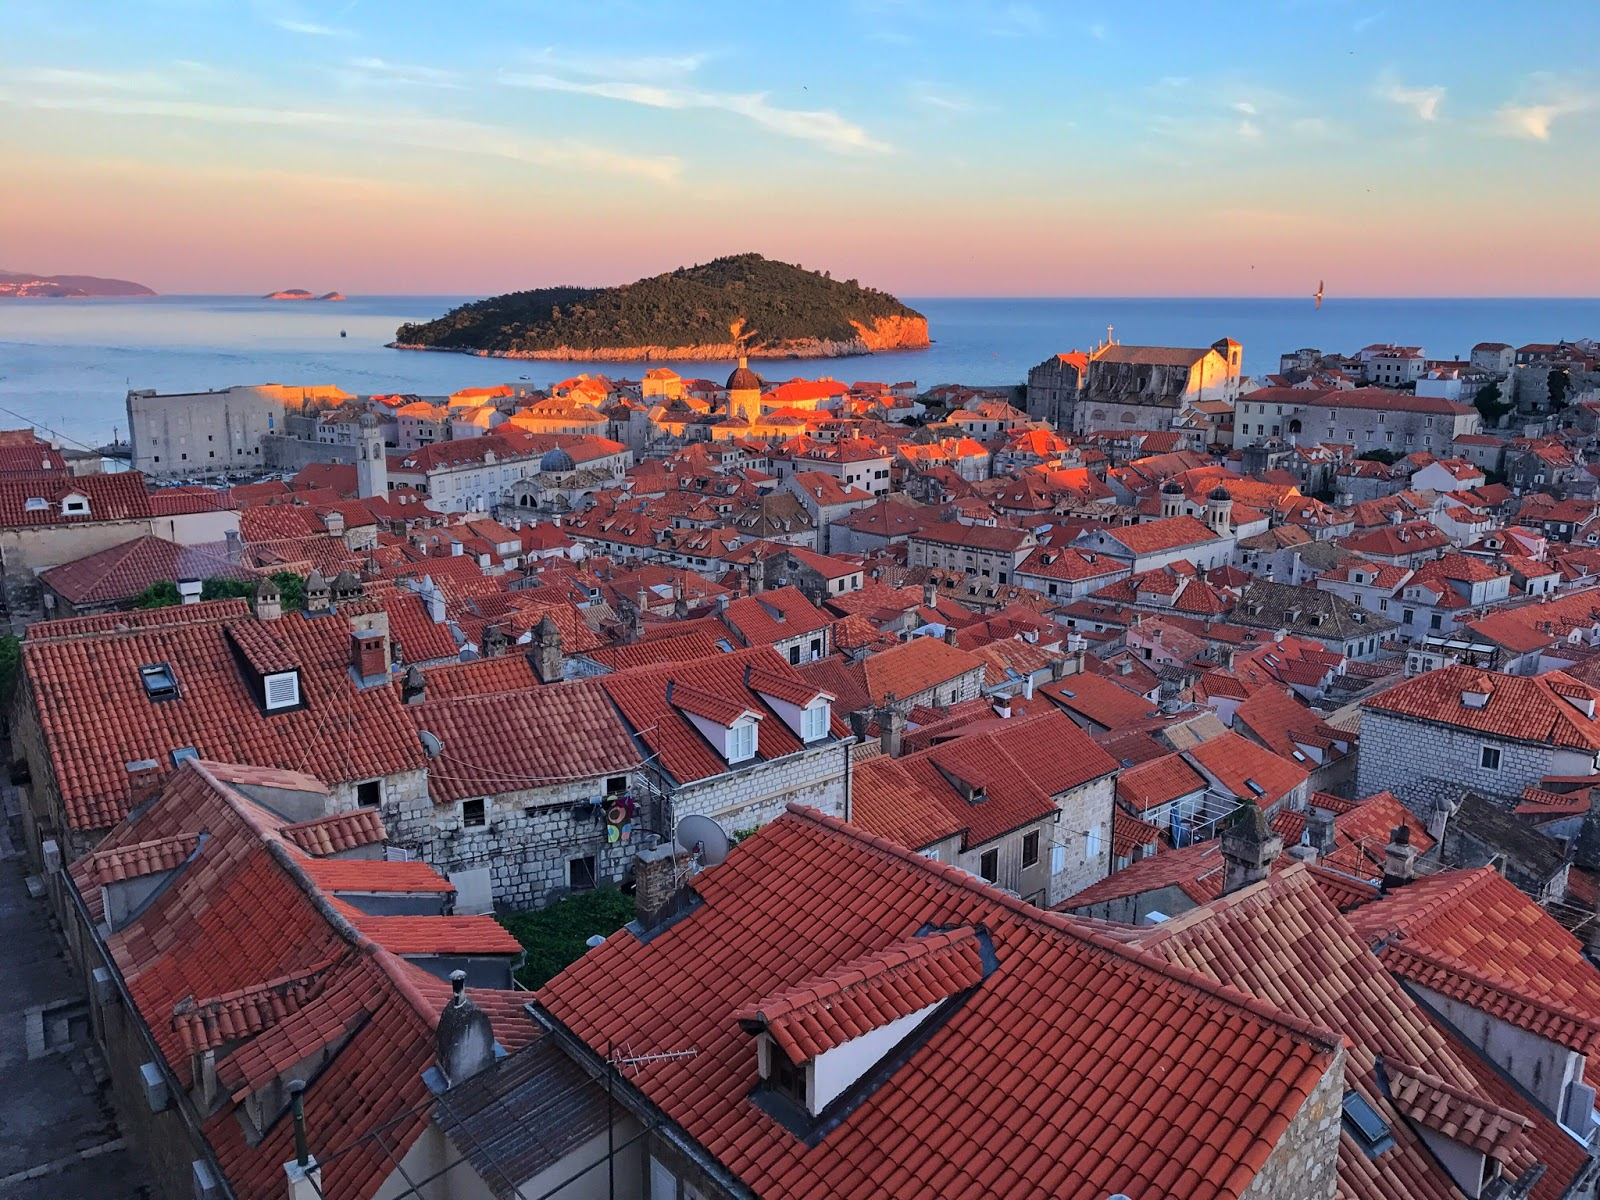 Croatia Itinerary 7 Days in Dubrovnik - Best Things to Do!- sunset view from Dubrovnik Old Town old city walls